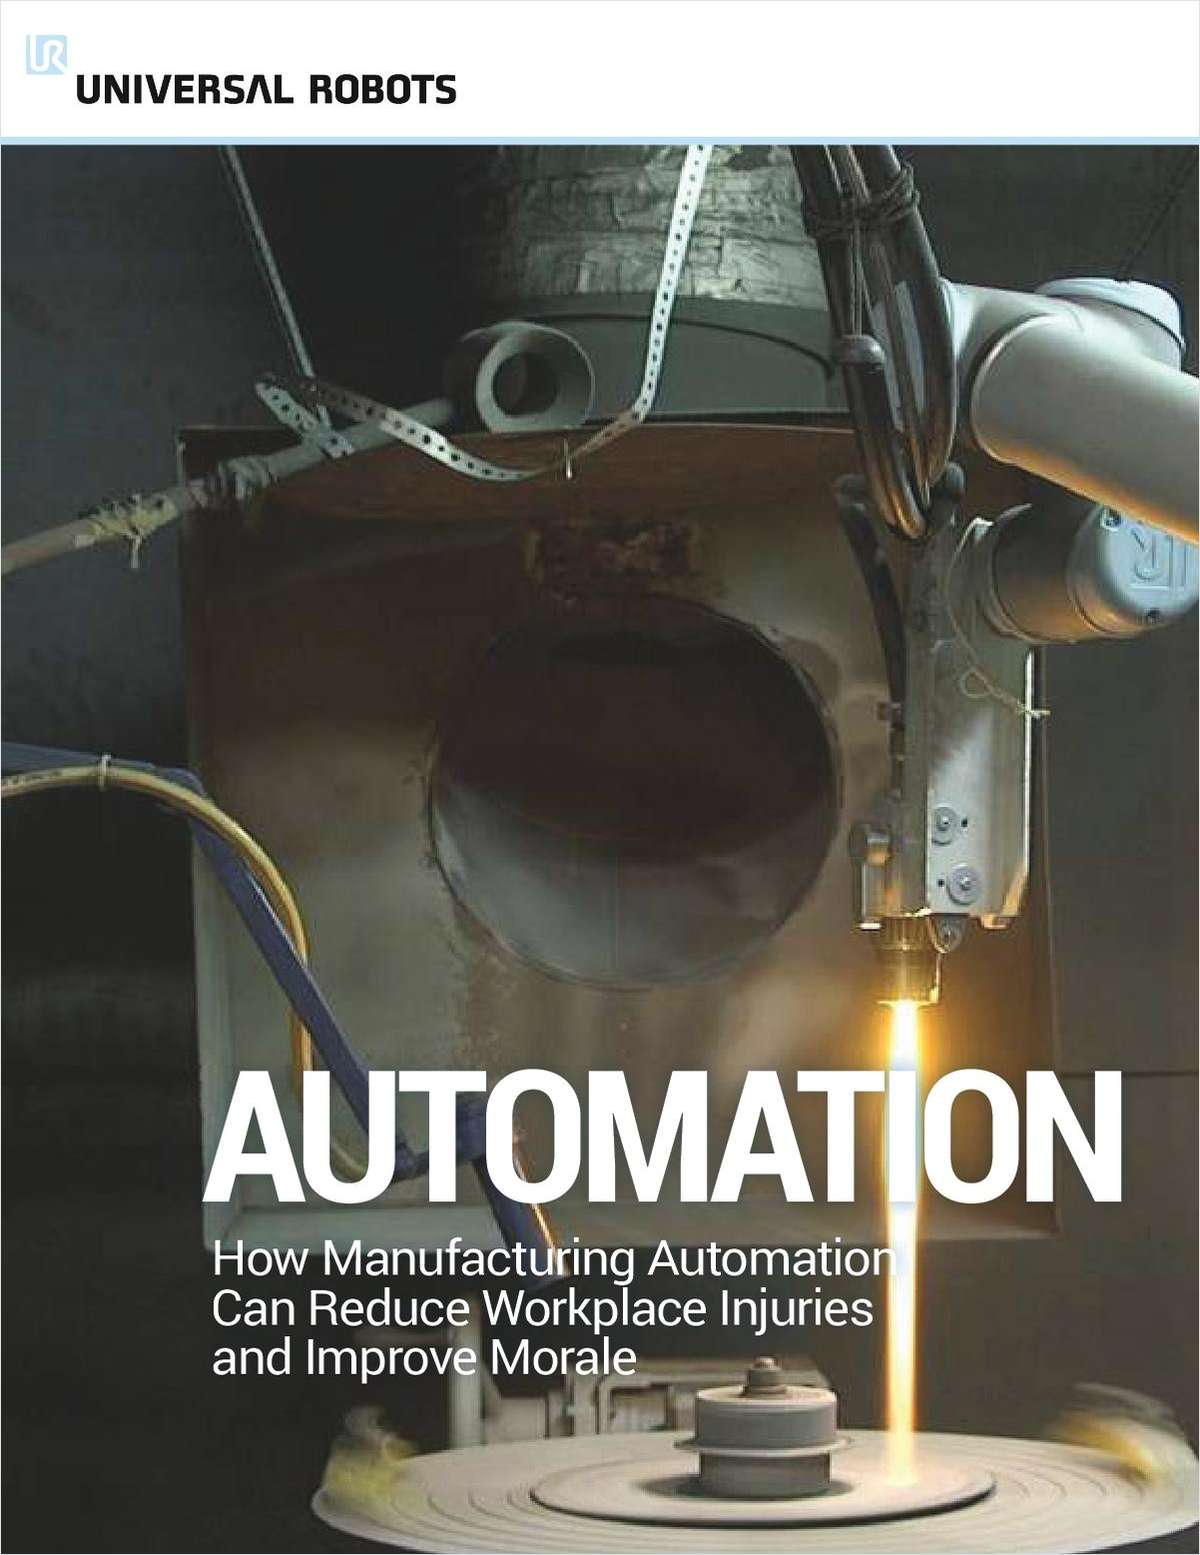 How Manufacturing Automation Can Reduce Workplace Injuries and Improve Morale